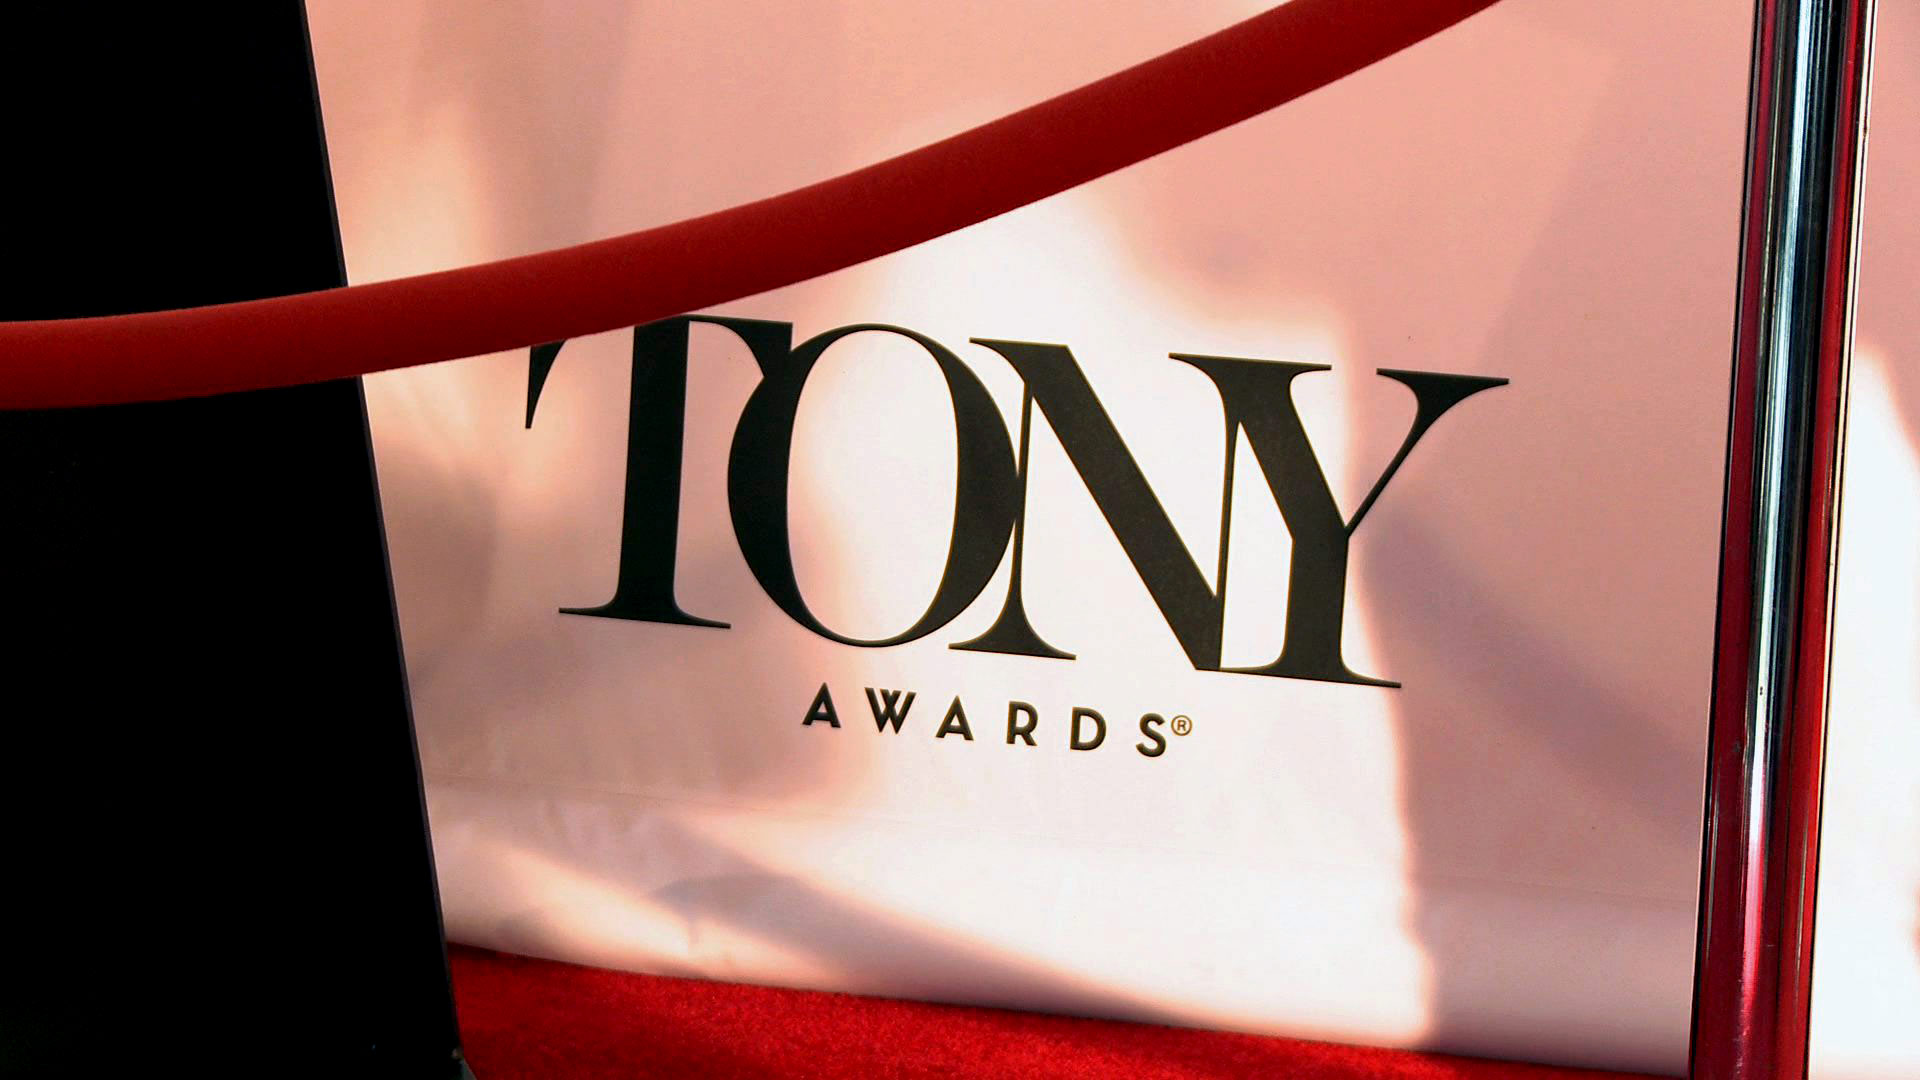 67th Annual Tony Awards at Radio City Music Hall in NYC